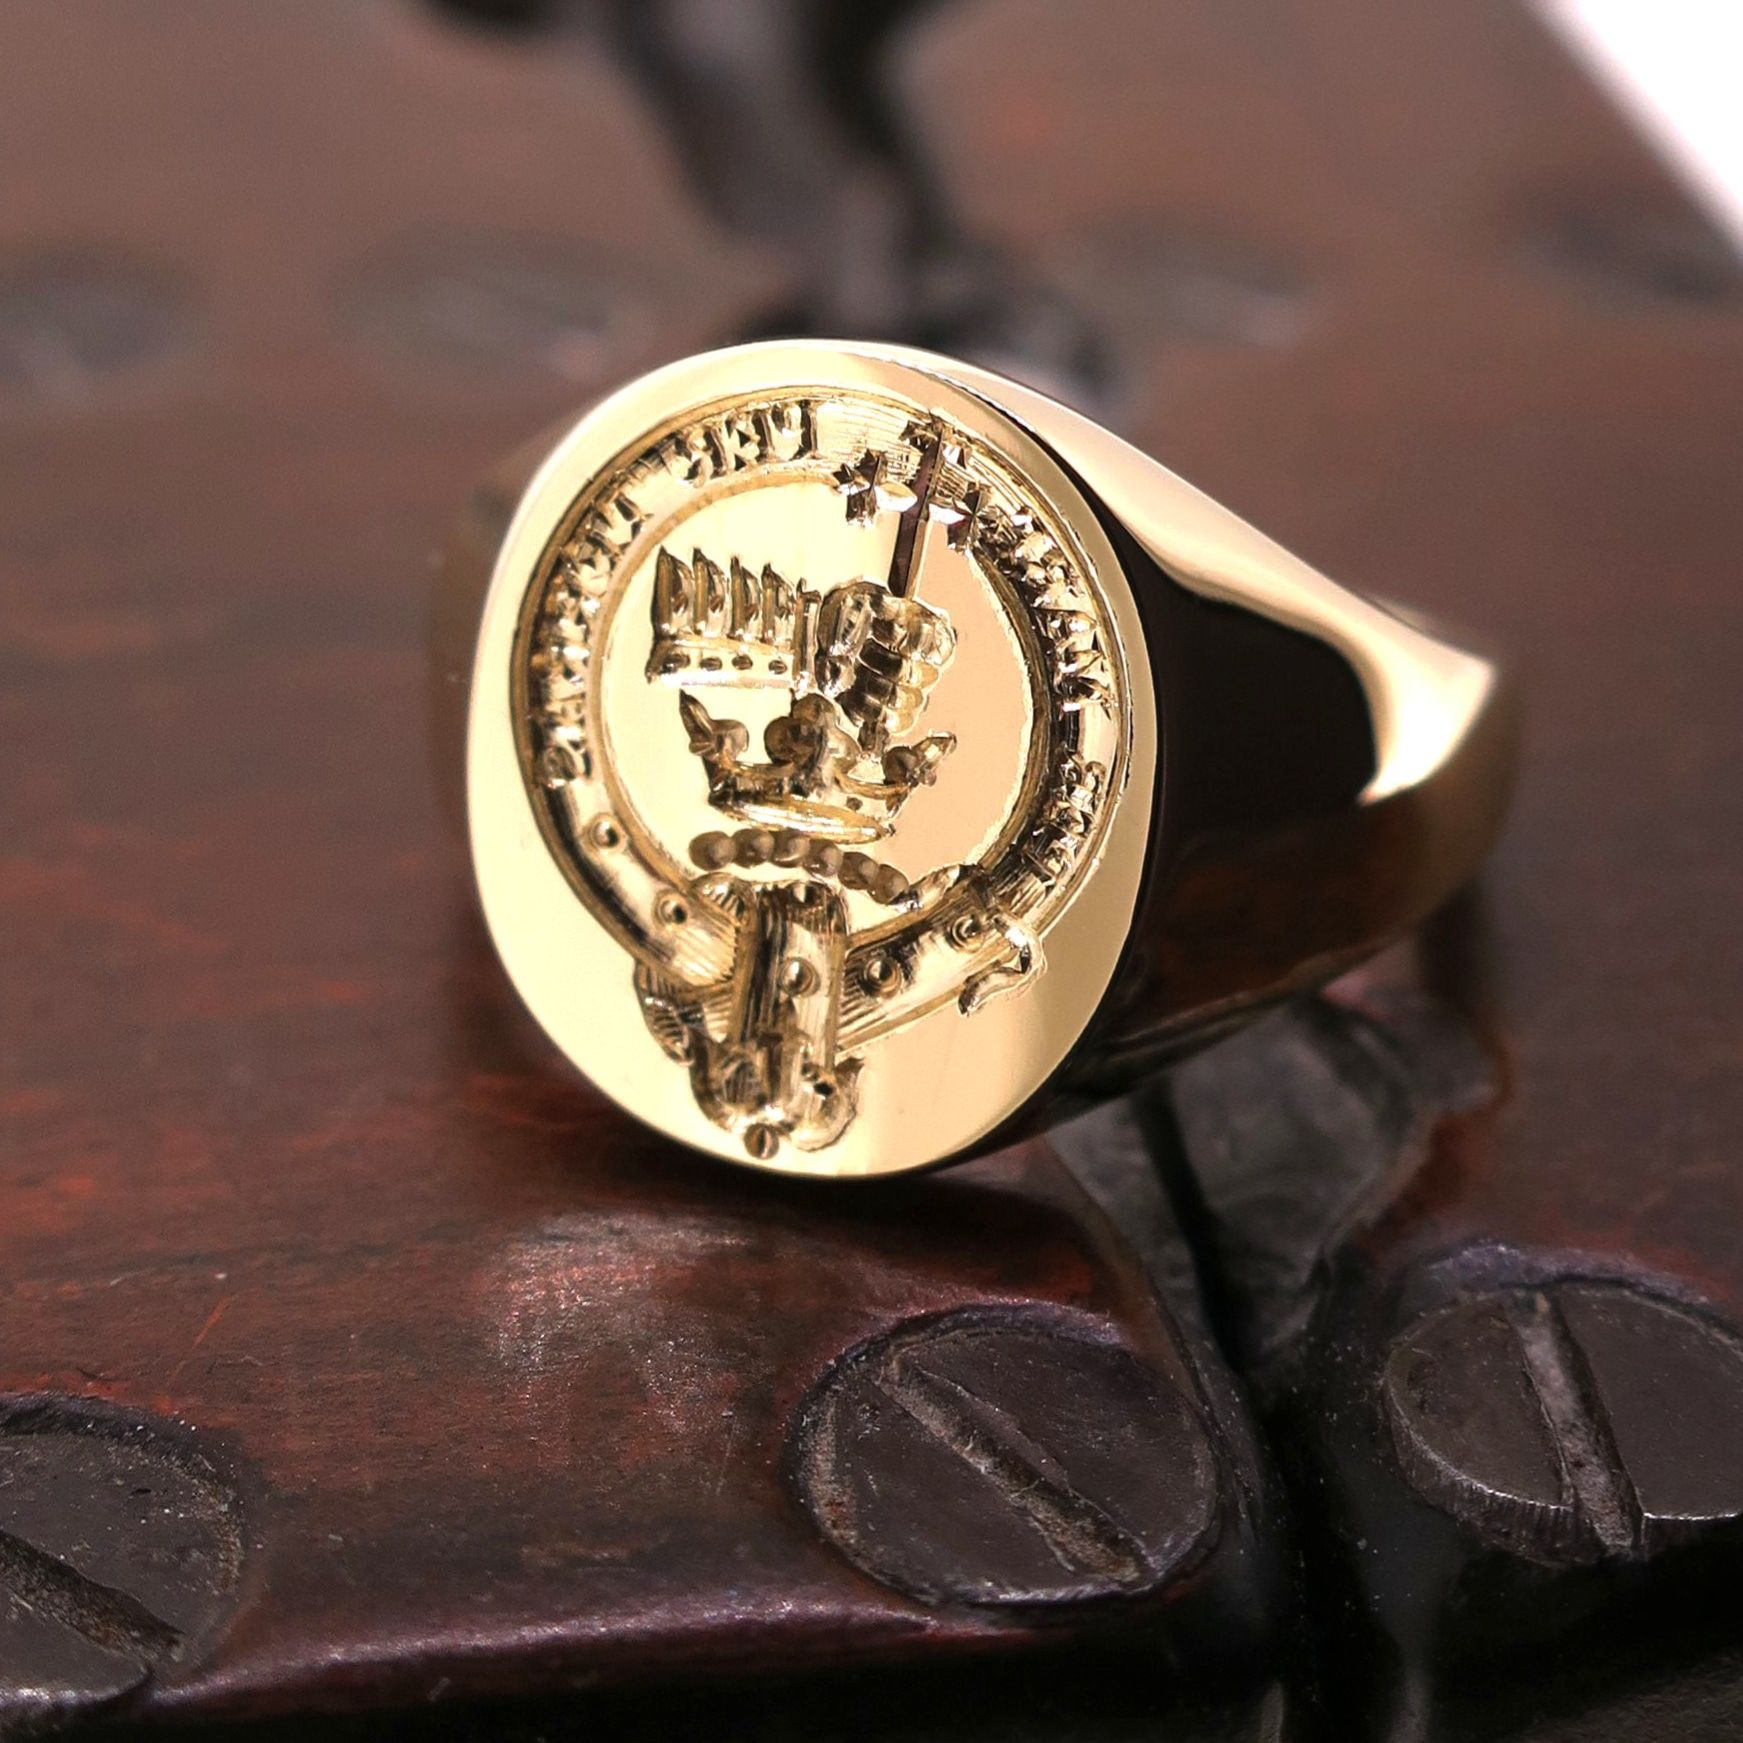 Intaglio Seal Hand Engraving Your Design Your Family Crest Coat Of Arms Bespoke